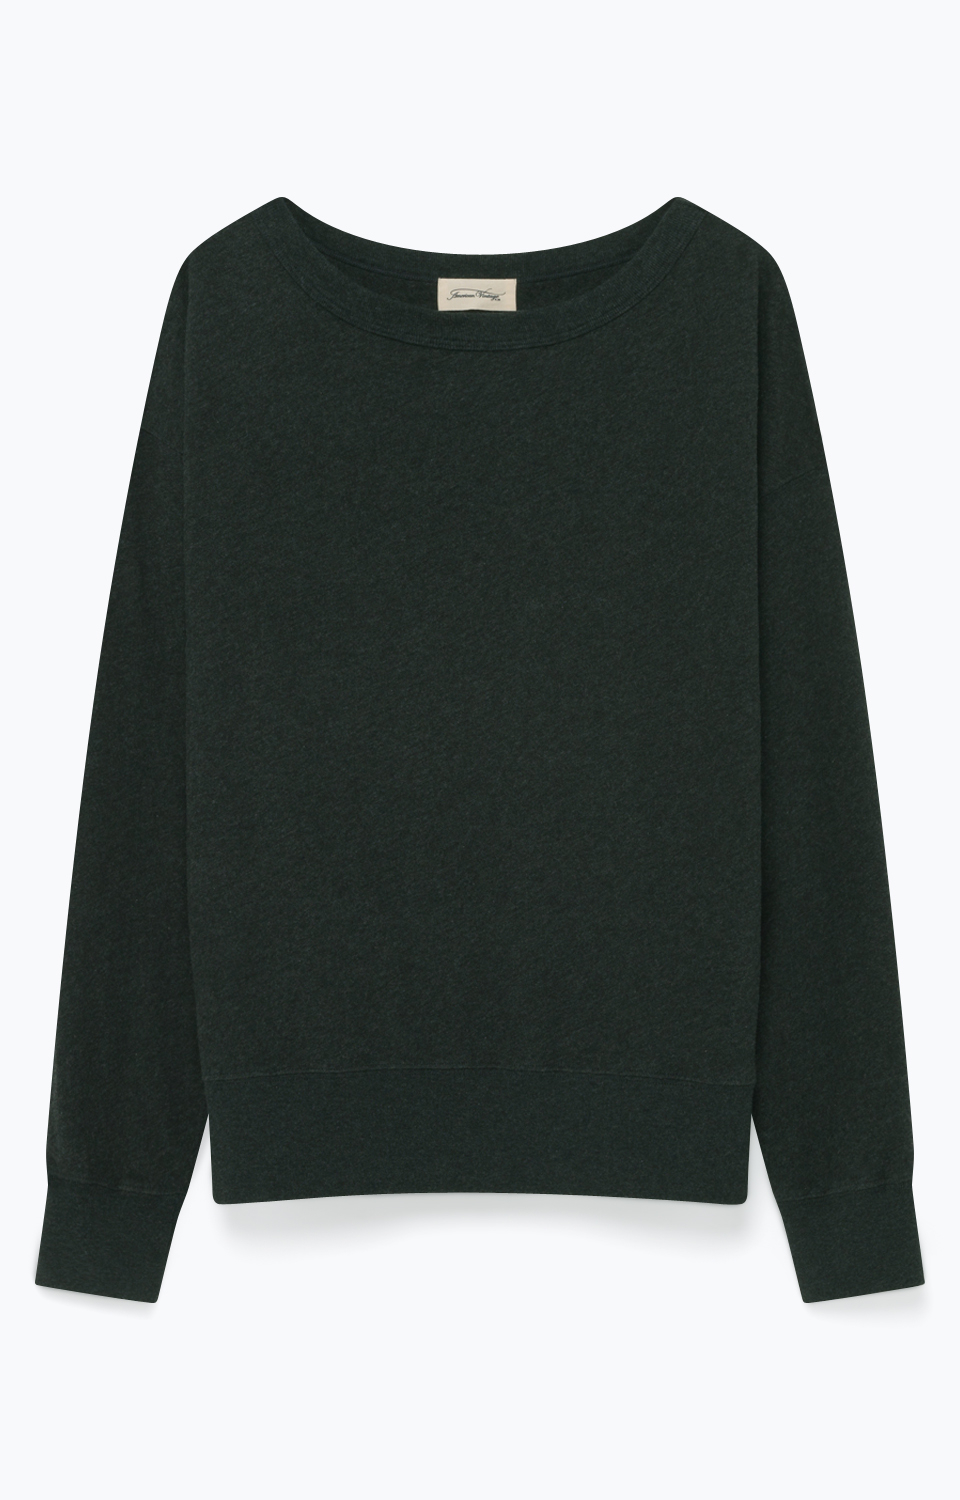 Image of   American Vintage Son35 Sweat Ml Col Bateau, Anthracite